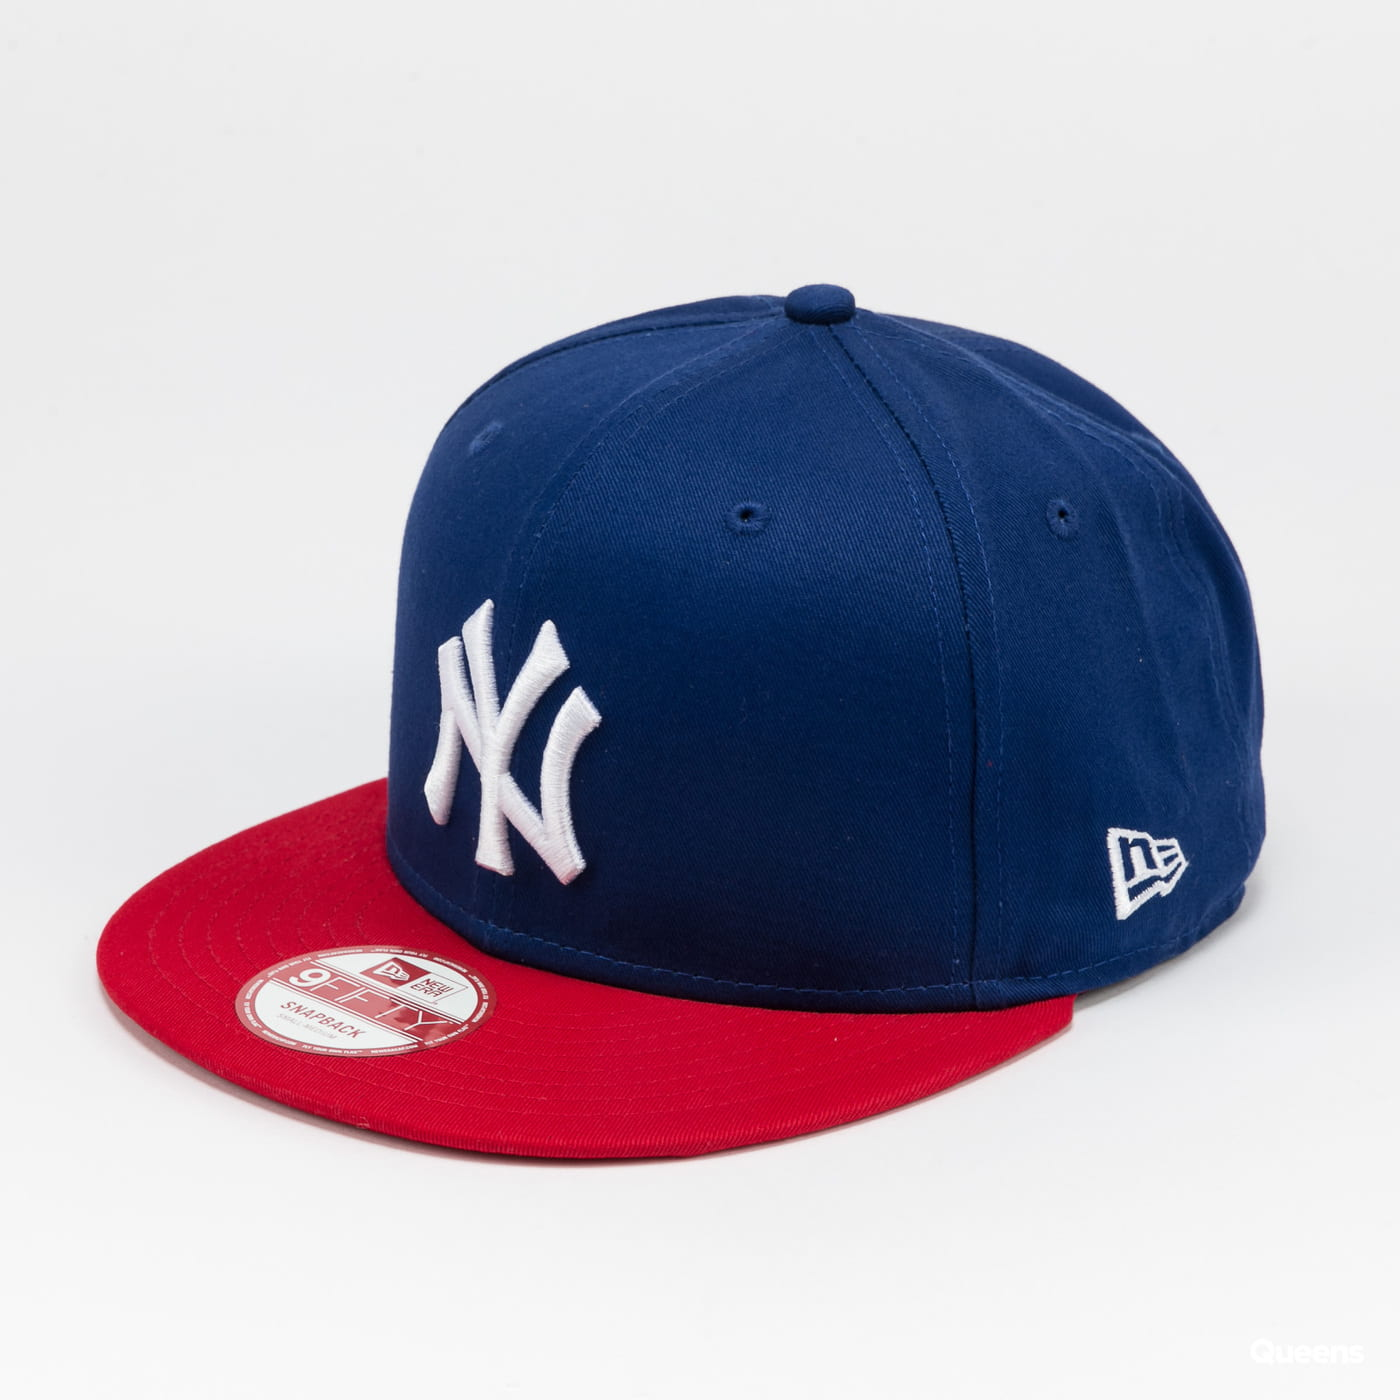 New Era 950 Cotton Block NY C/O dunkelblau / rot / weiß